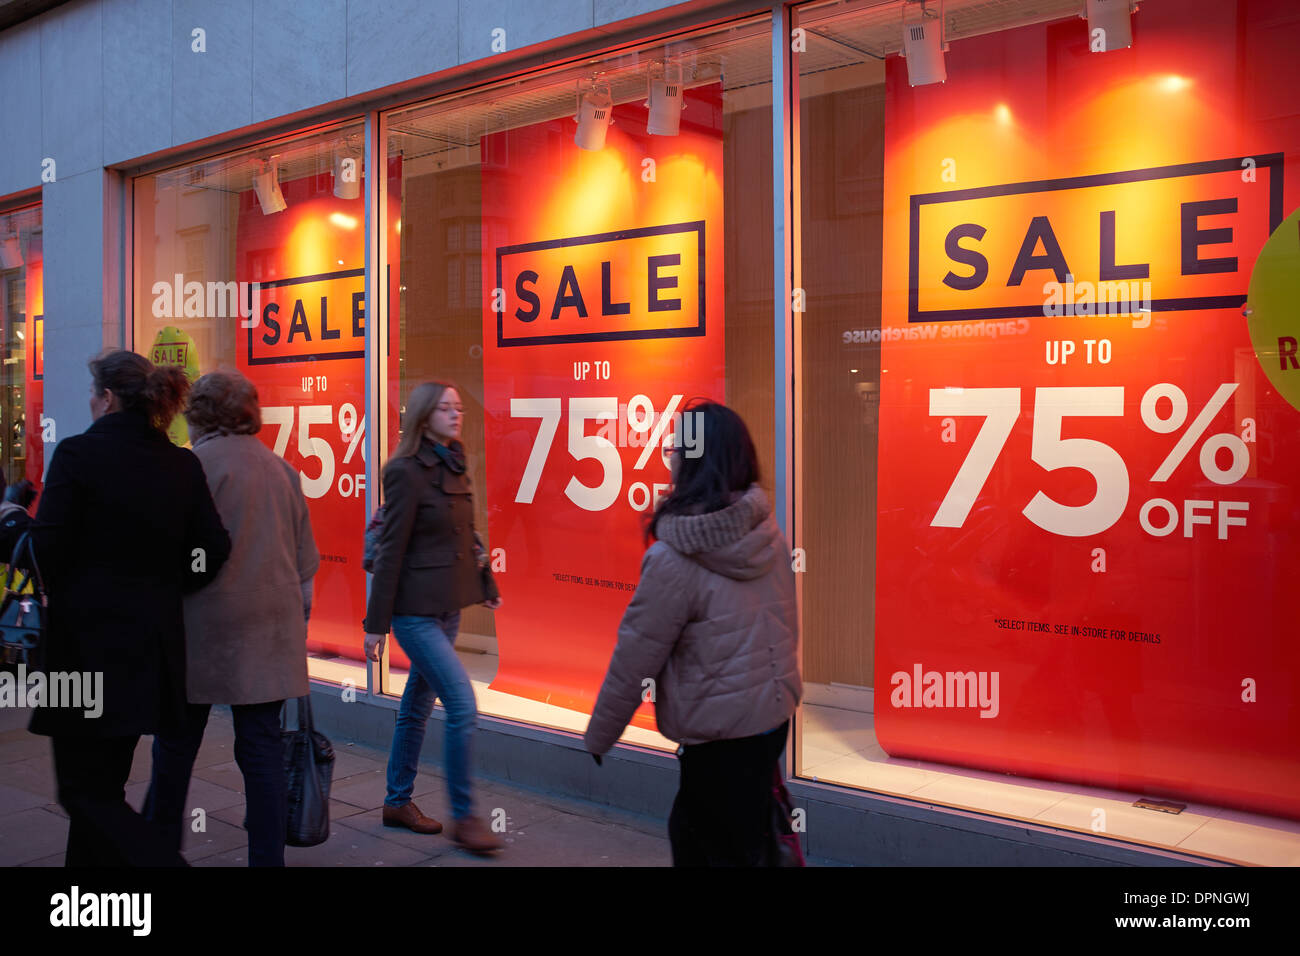 Shoppers walking past the sale banners in a shop window - Stock Image